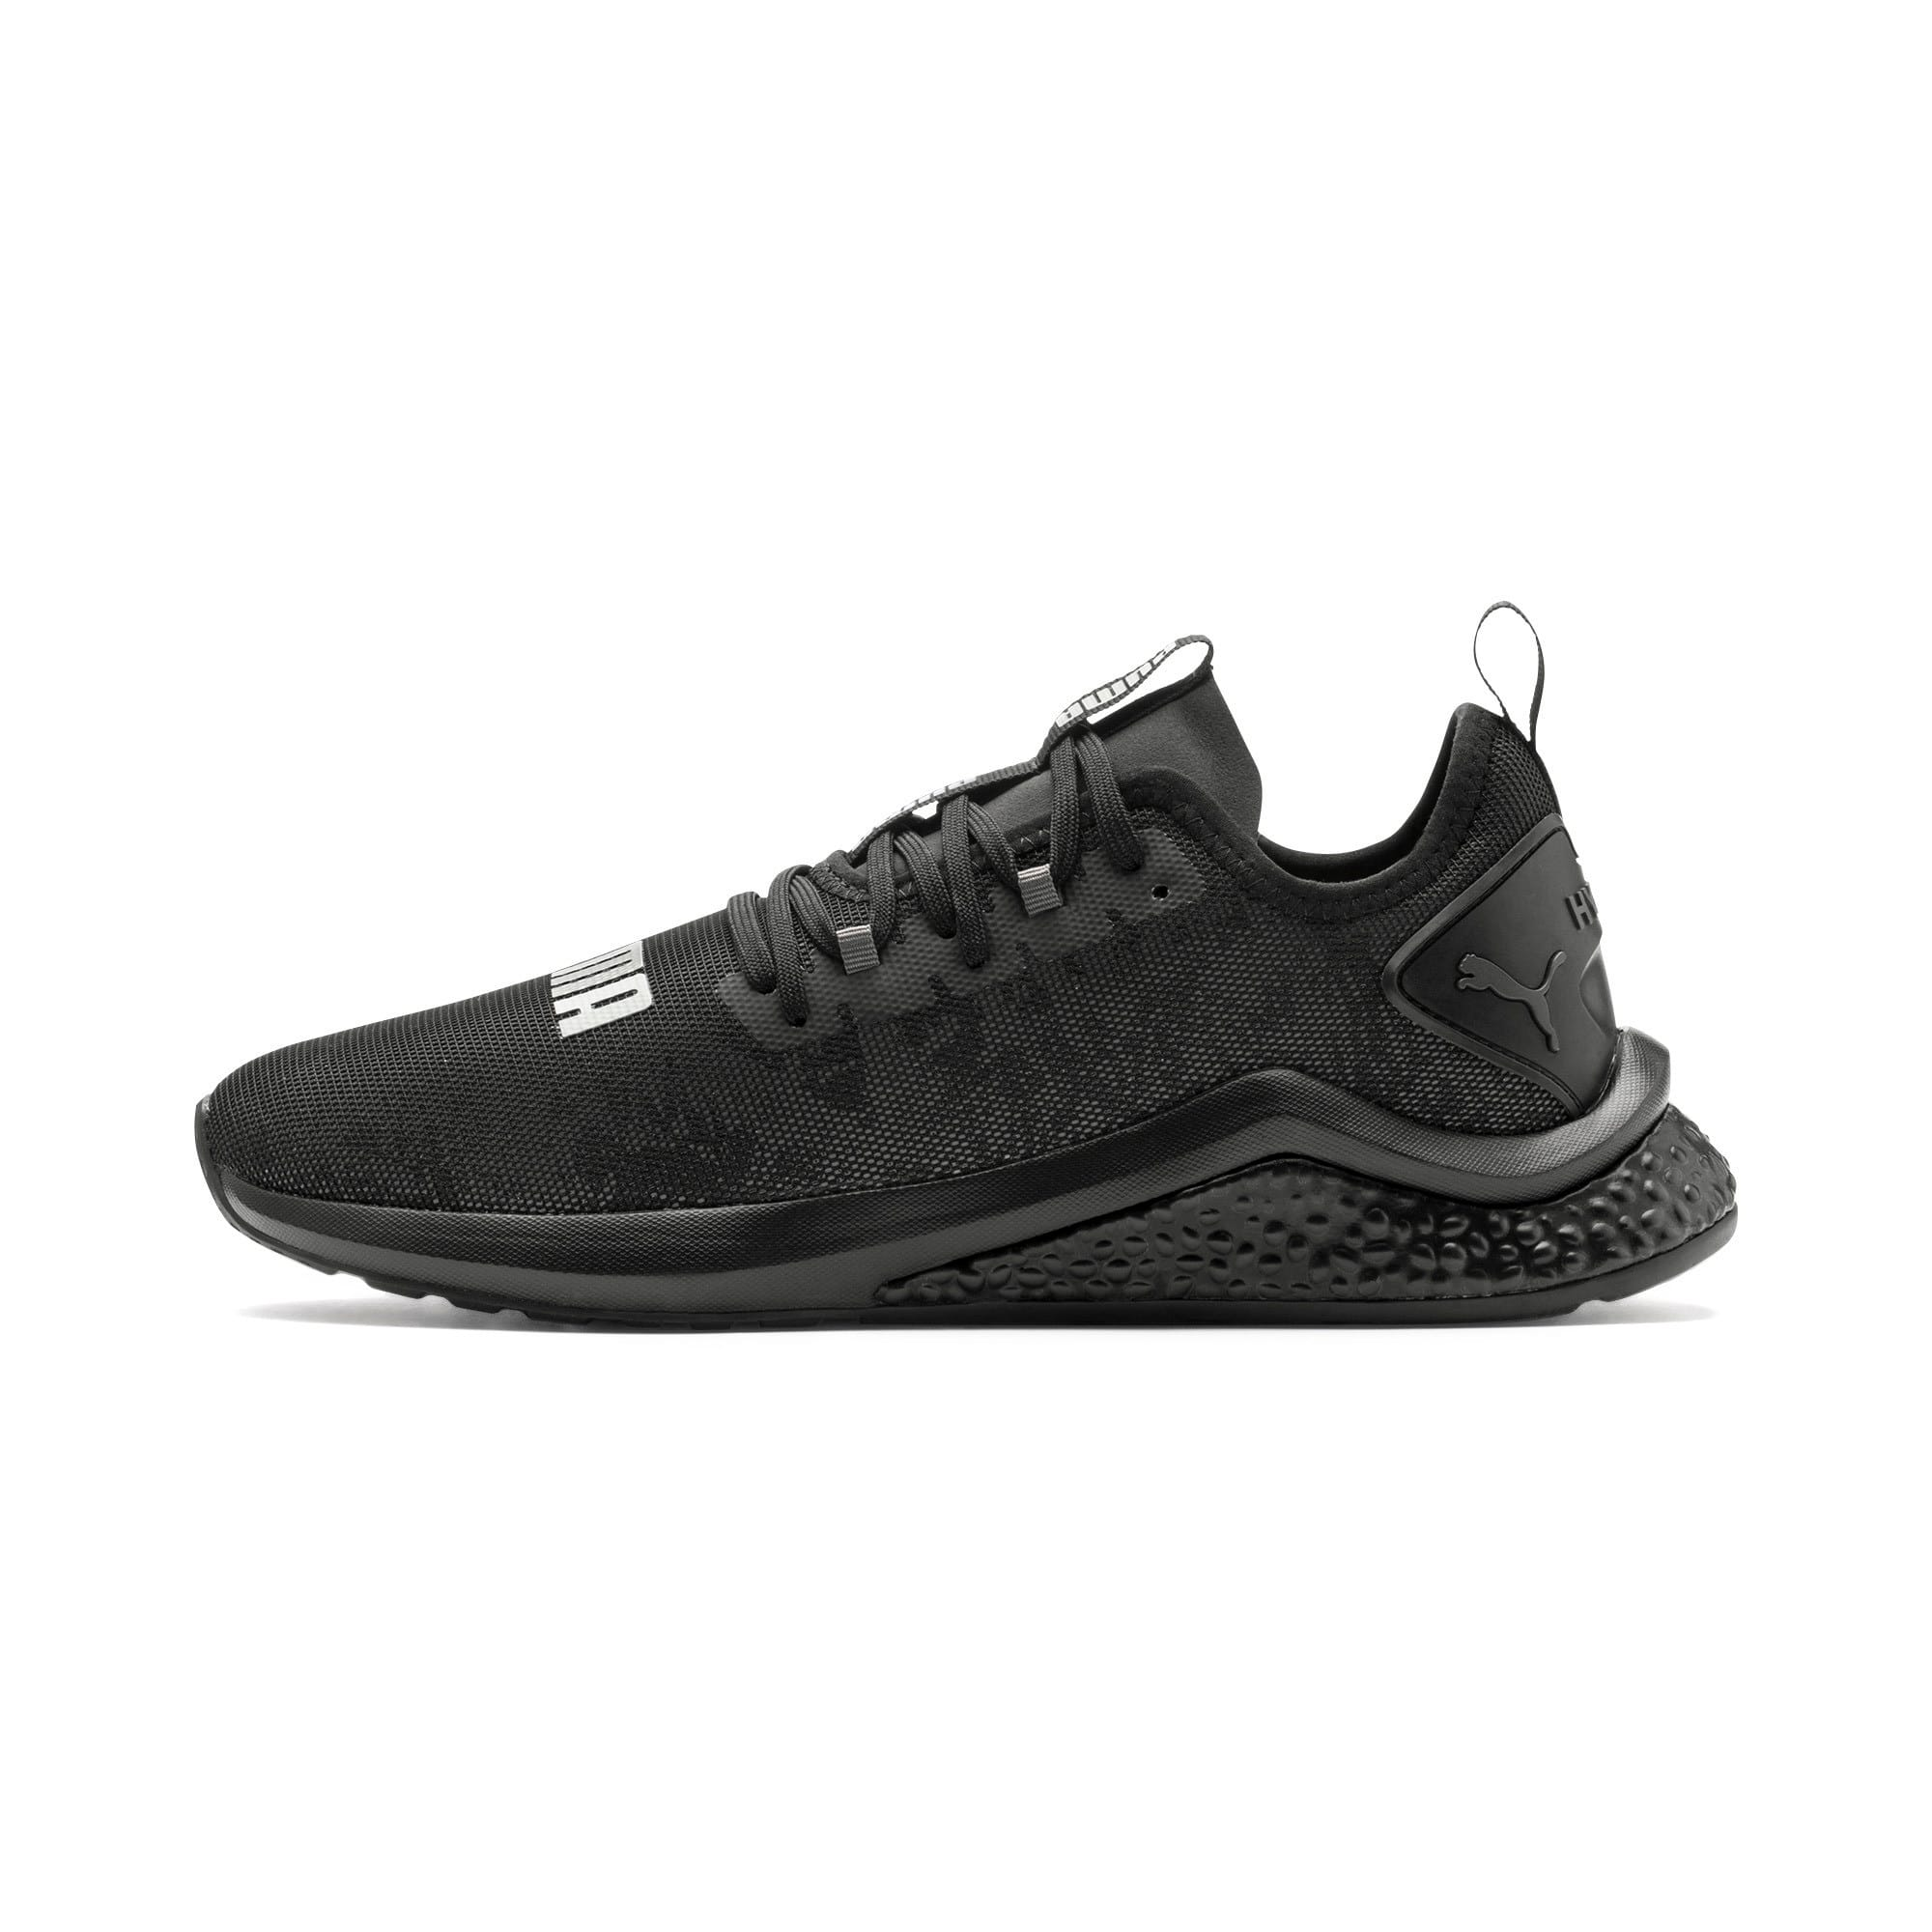 Thumbnail 1 of Chaussure de course HYBRID NX Rave pour homme, Puma Black, medium